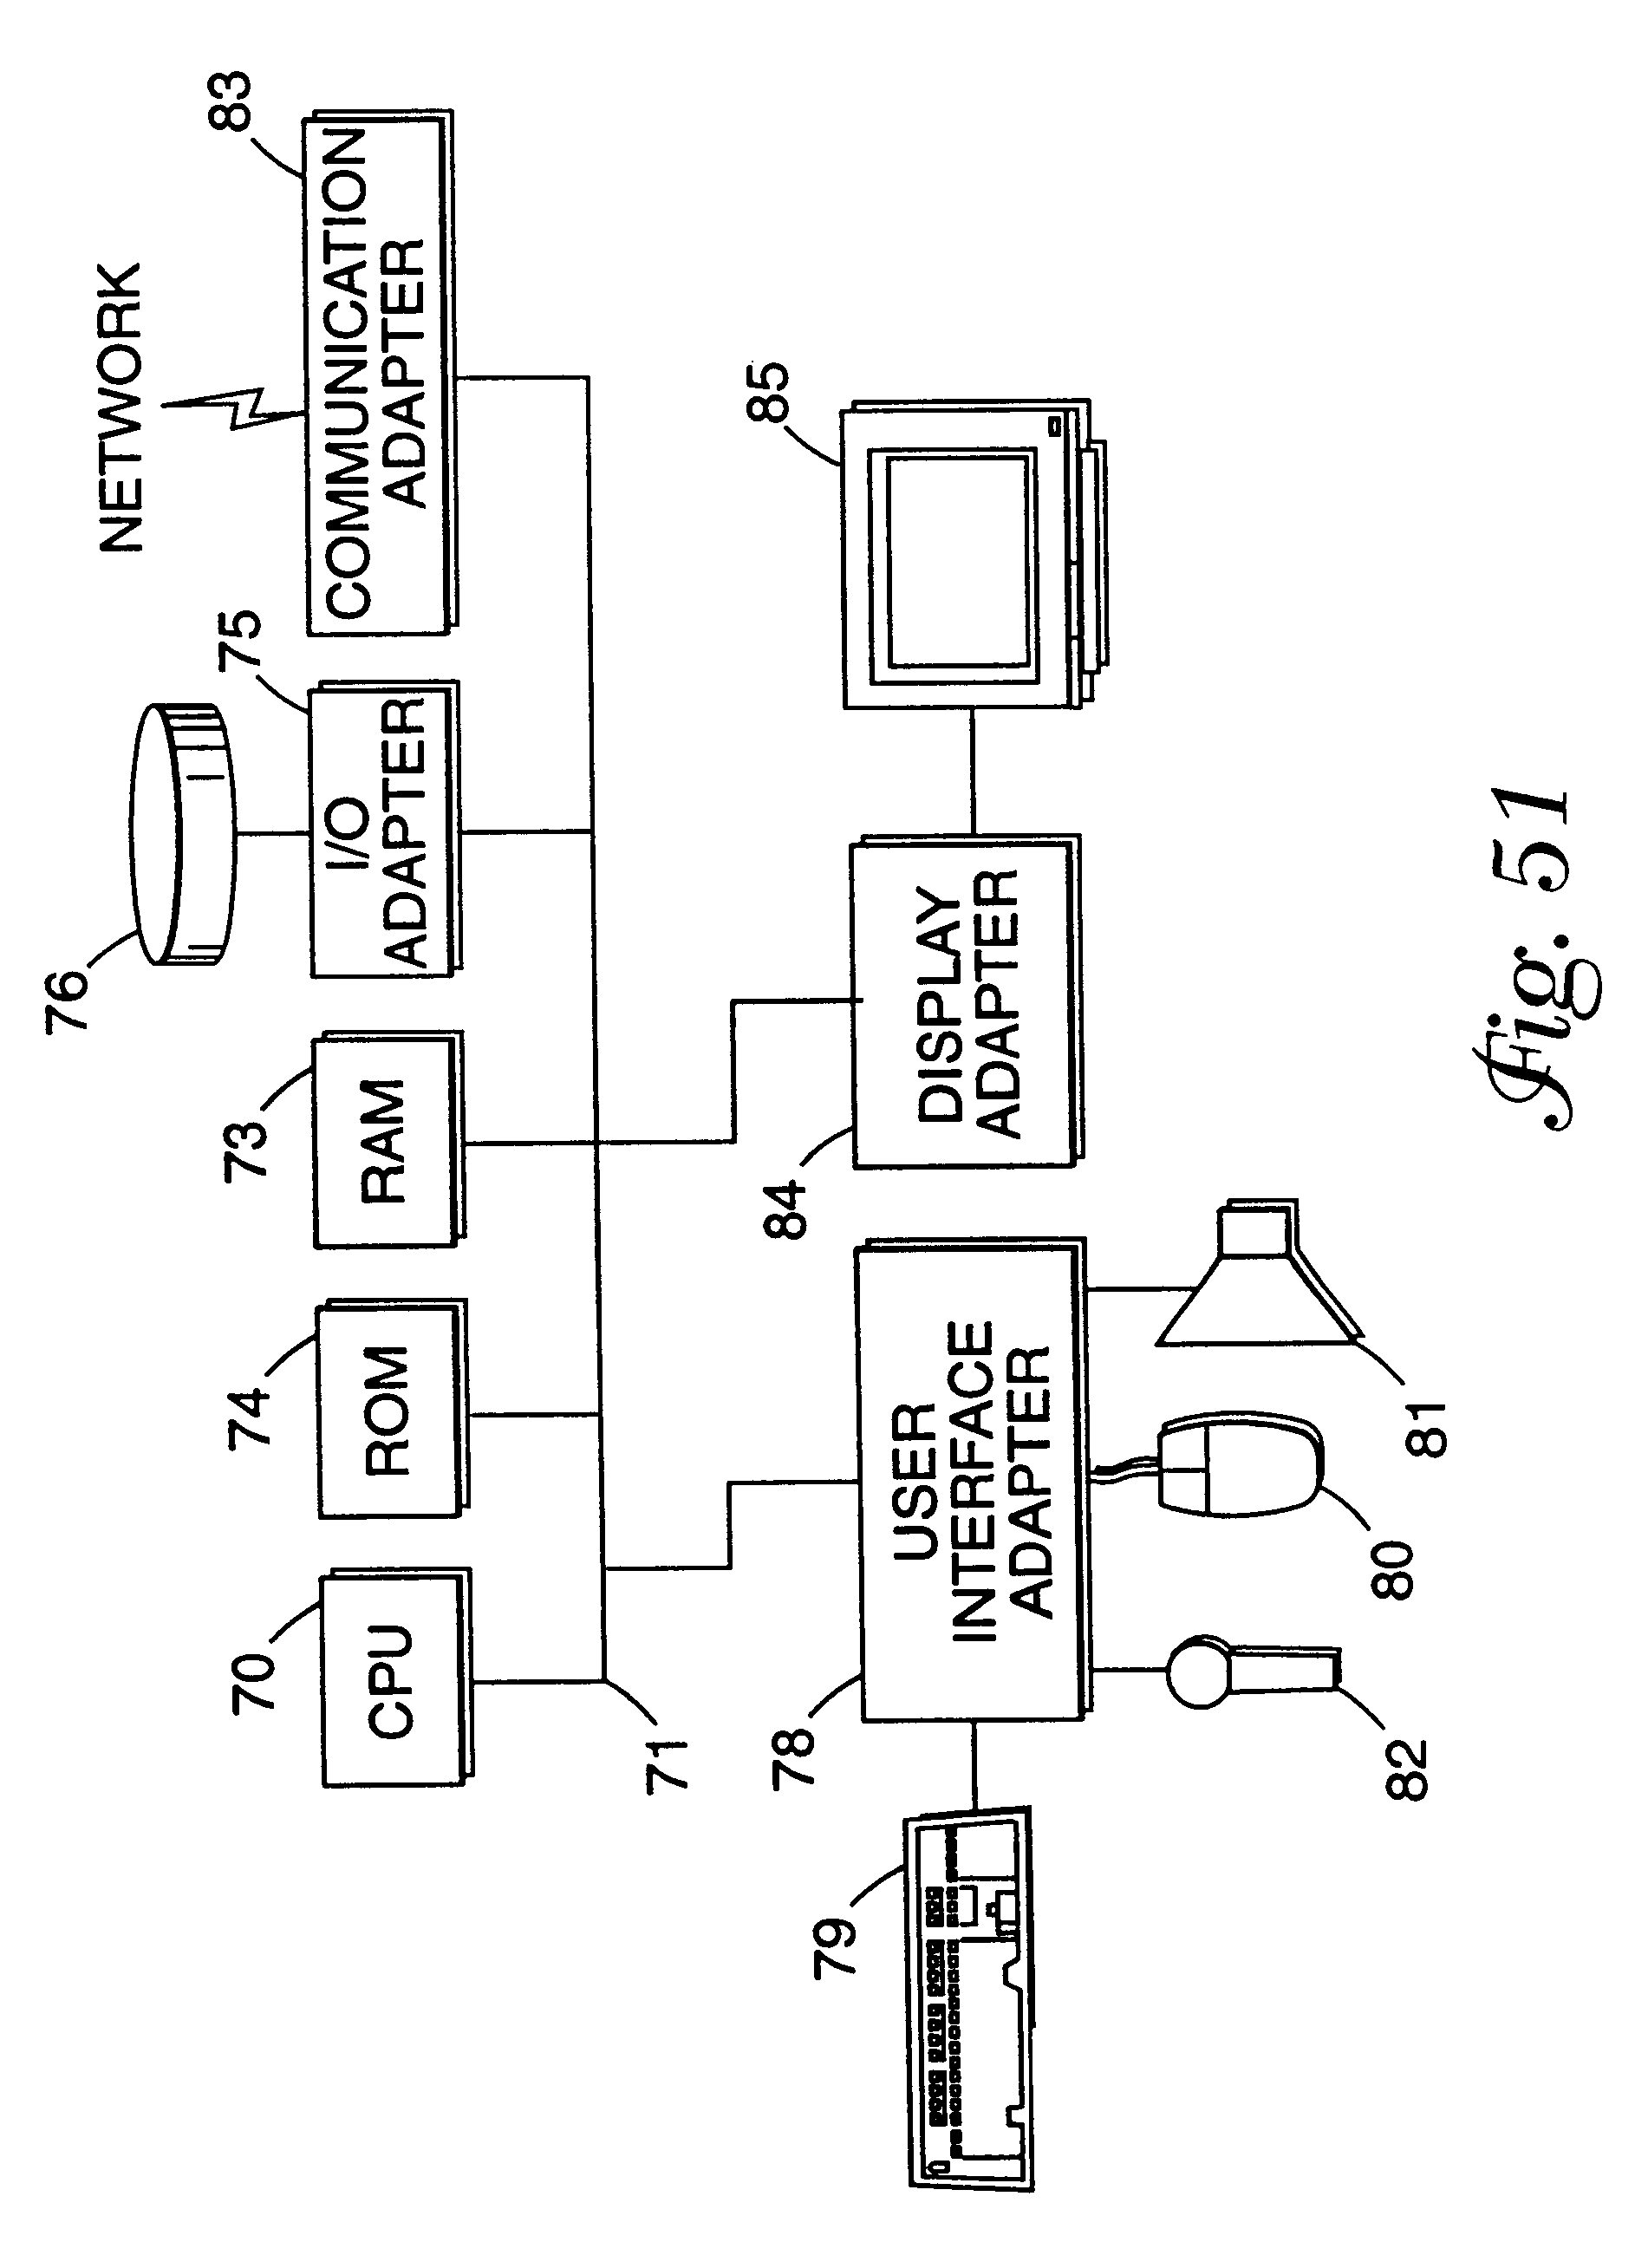 Patent Us 6519571 B1 Faxphone Wiring Diagram Images